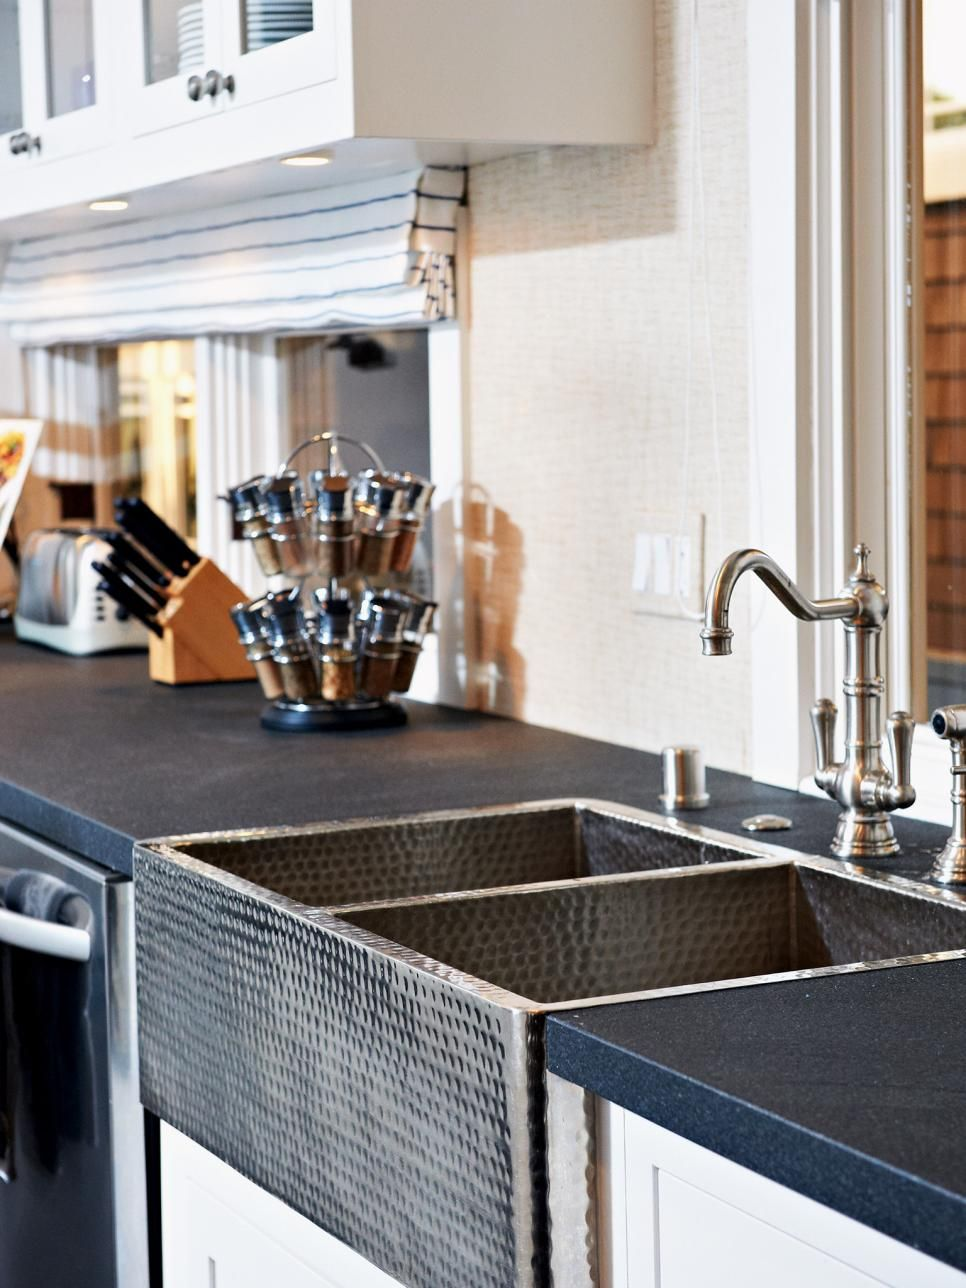 Bored With Your Basic Kitchen Countertops Explore Countertop Options On Hgtv From Unusual Materials Like Gl And Metal To More Traditional